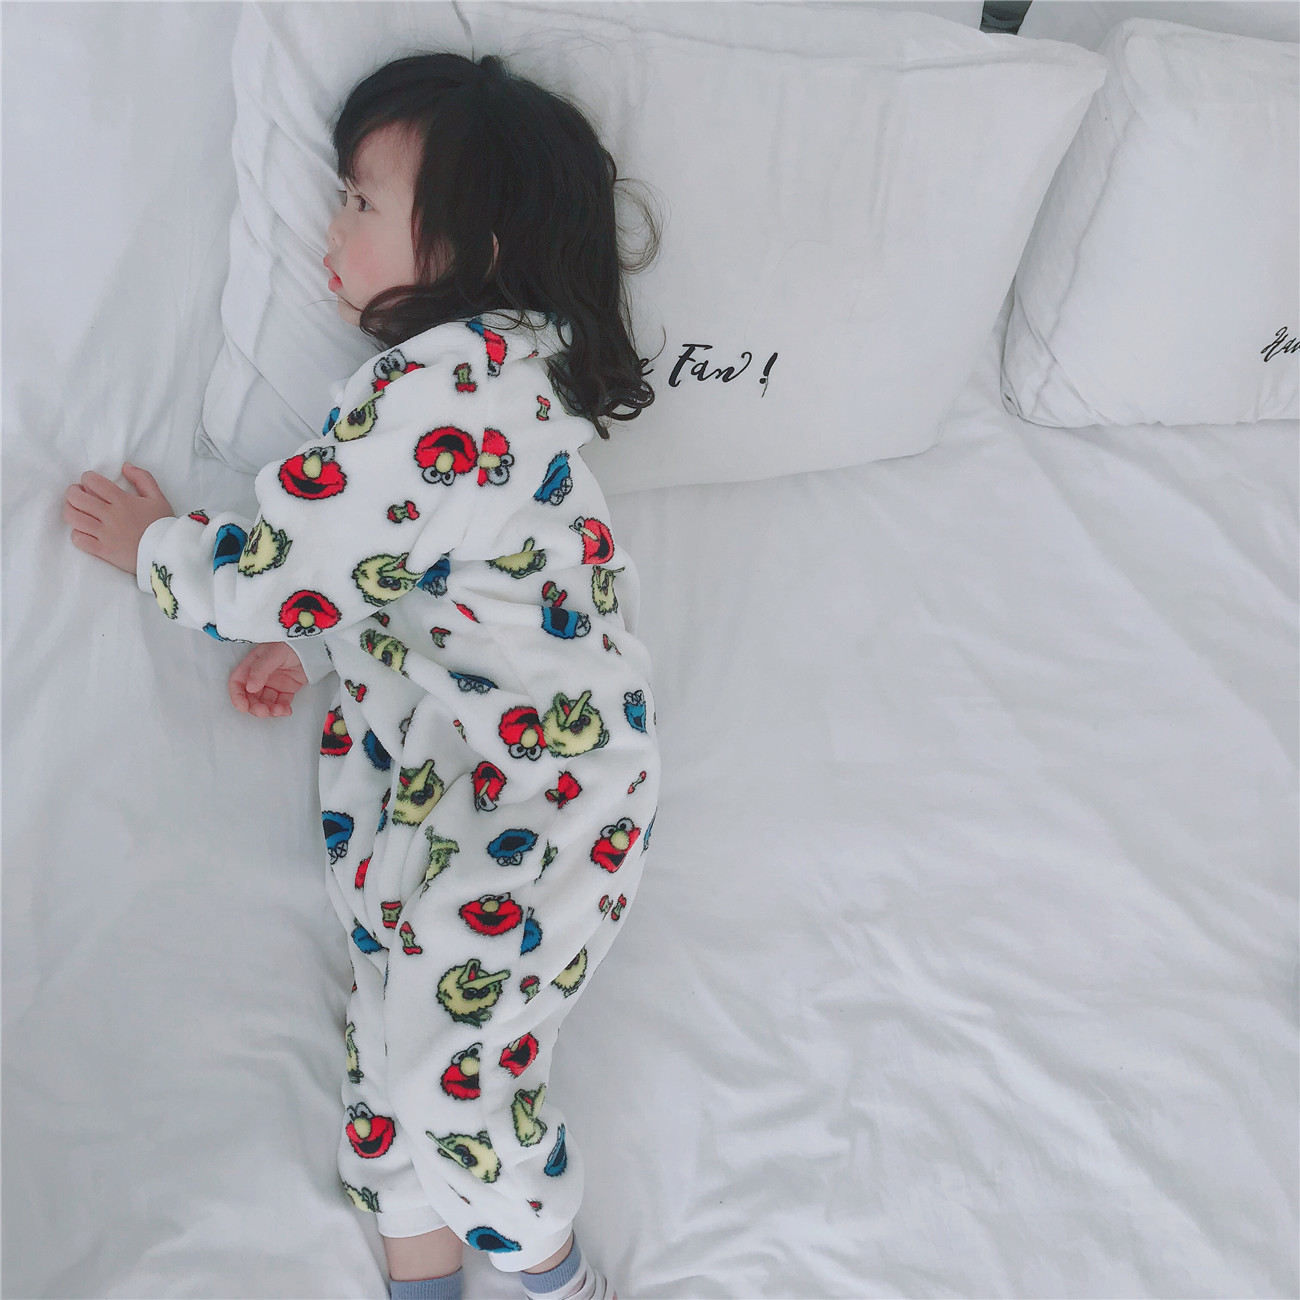 2019 Autumn & Winter CHILDREN'S Pajamas Double-Sided Flannel Sleeping Bag Baby Tracksuit Cartoon Warm Pajamas